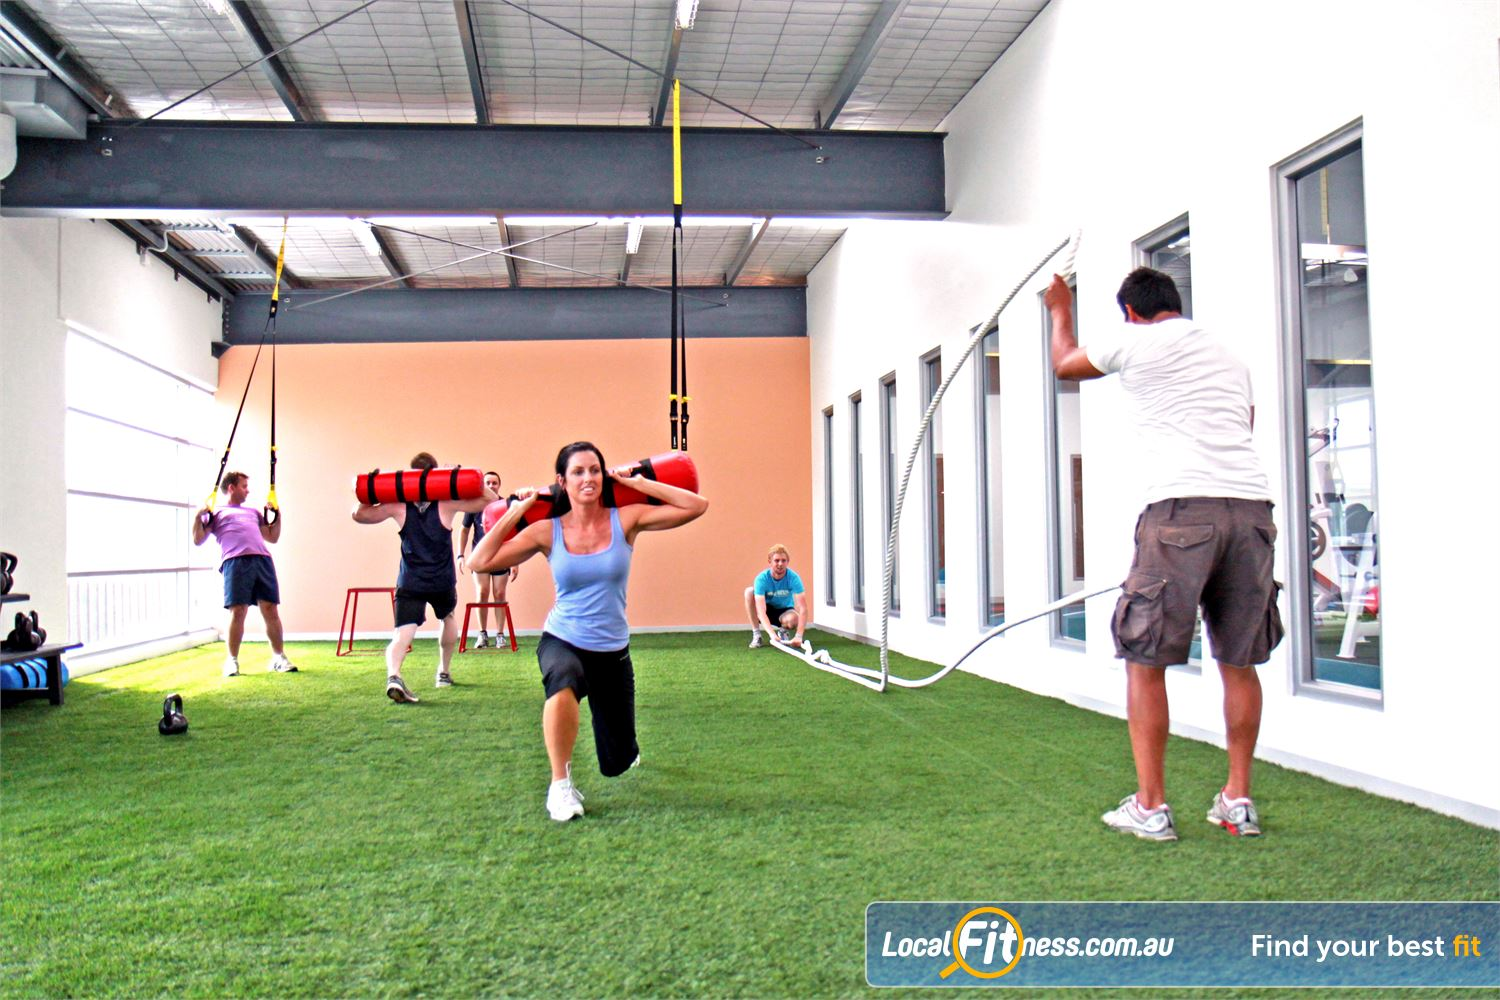 Genesis Fitness Clubs Maidstone Melbourne's first specialised indoor boot camp facility.